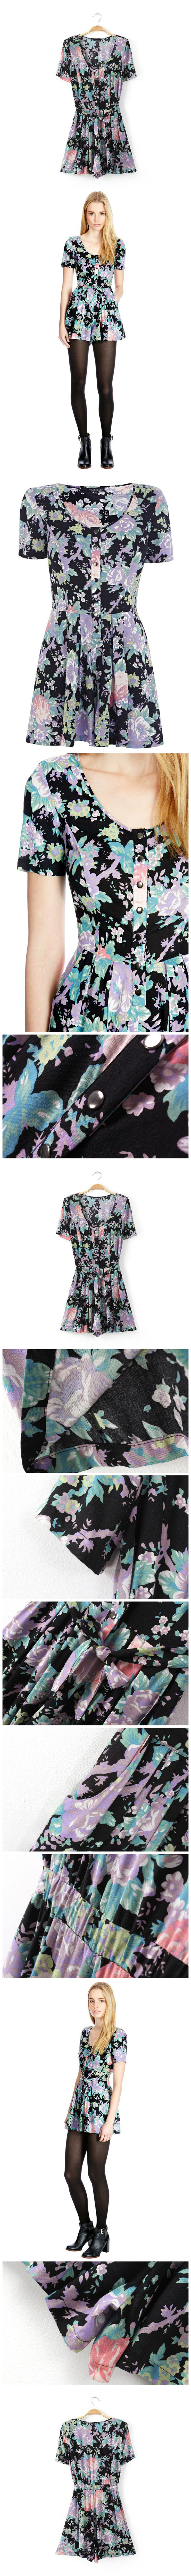 Women : Floral printed playsuit short sleeve pantskirt jumpsuit ghl1003